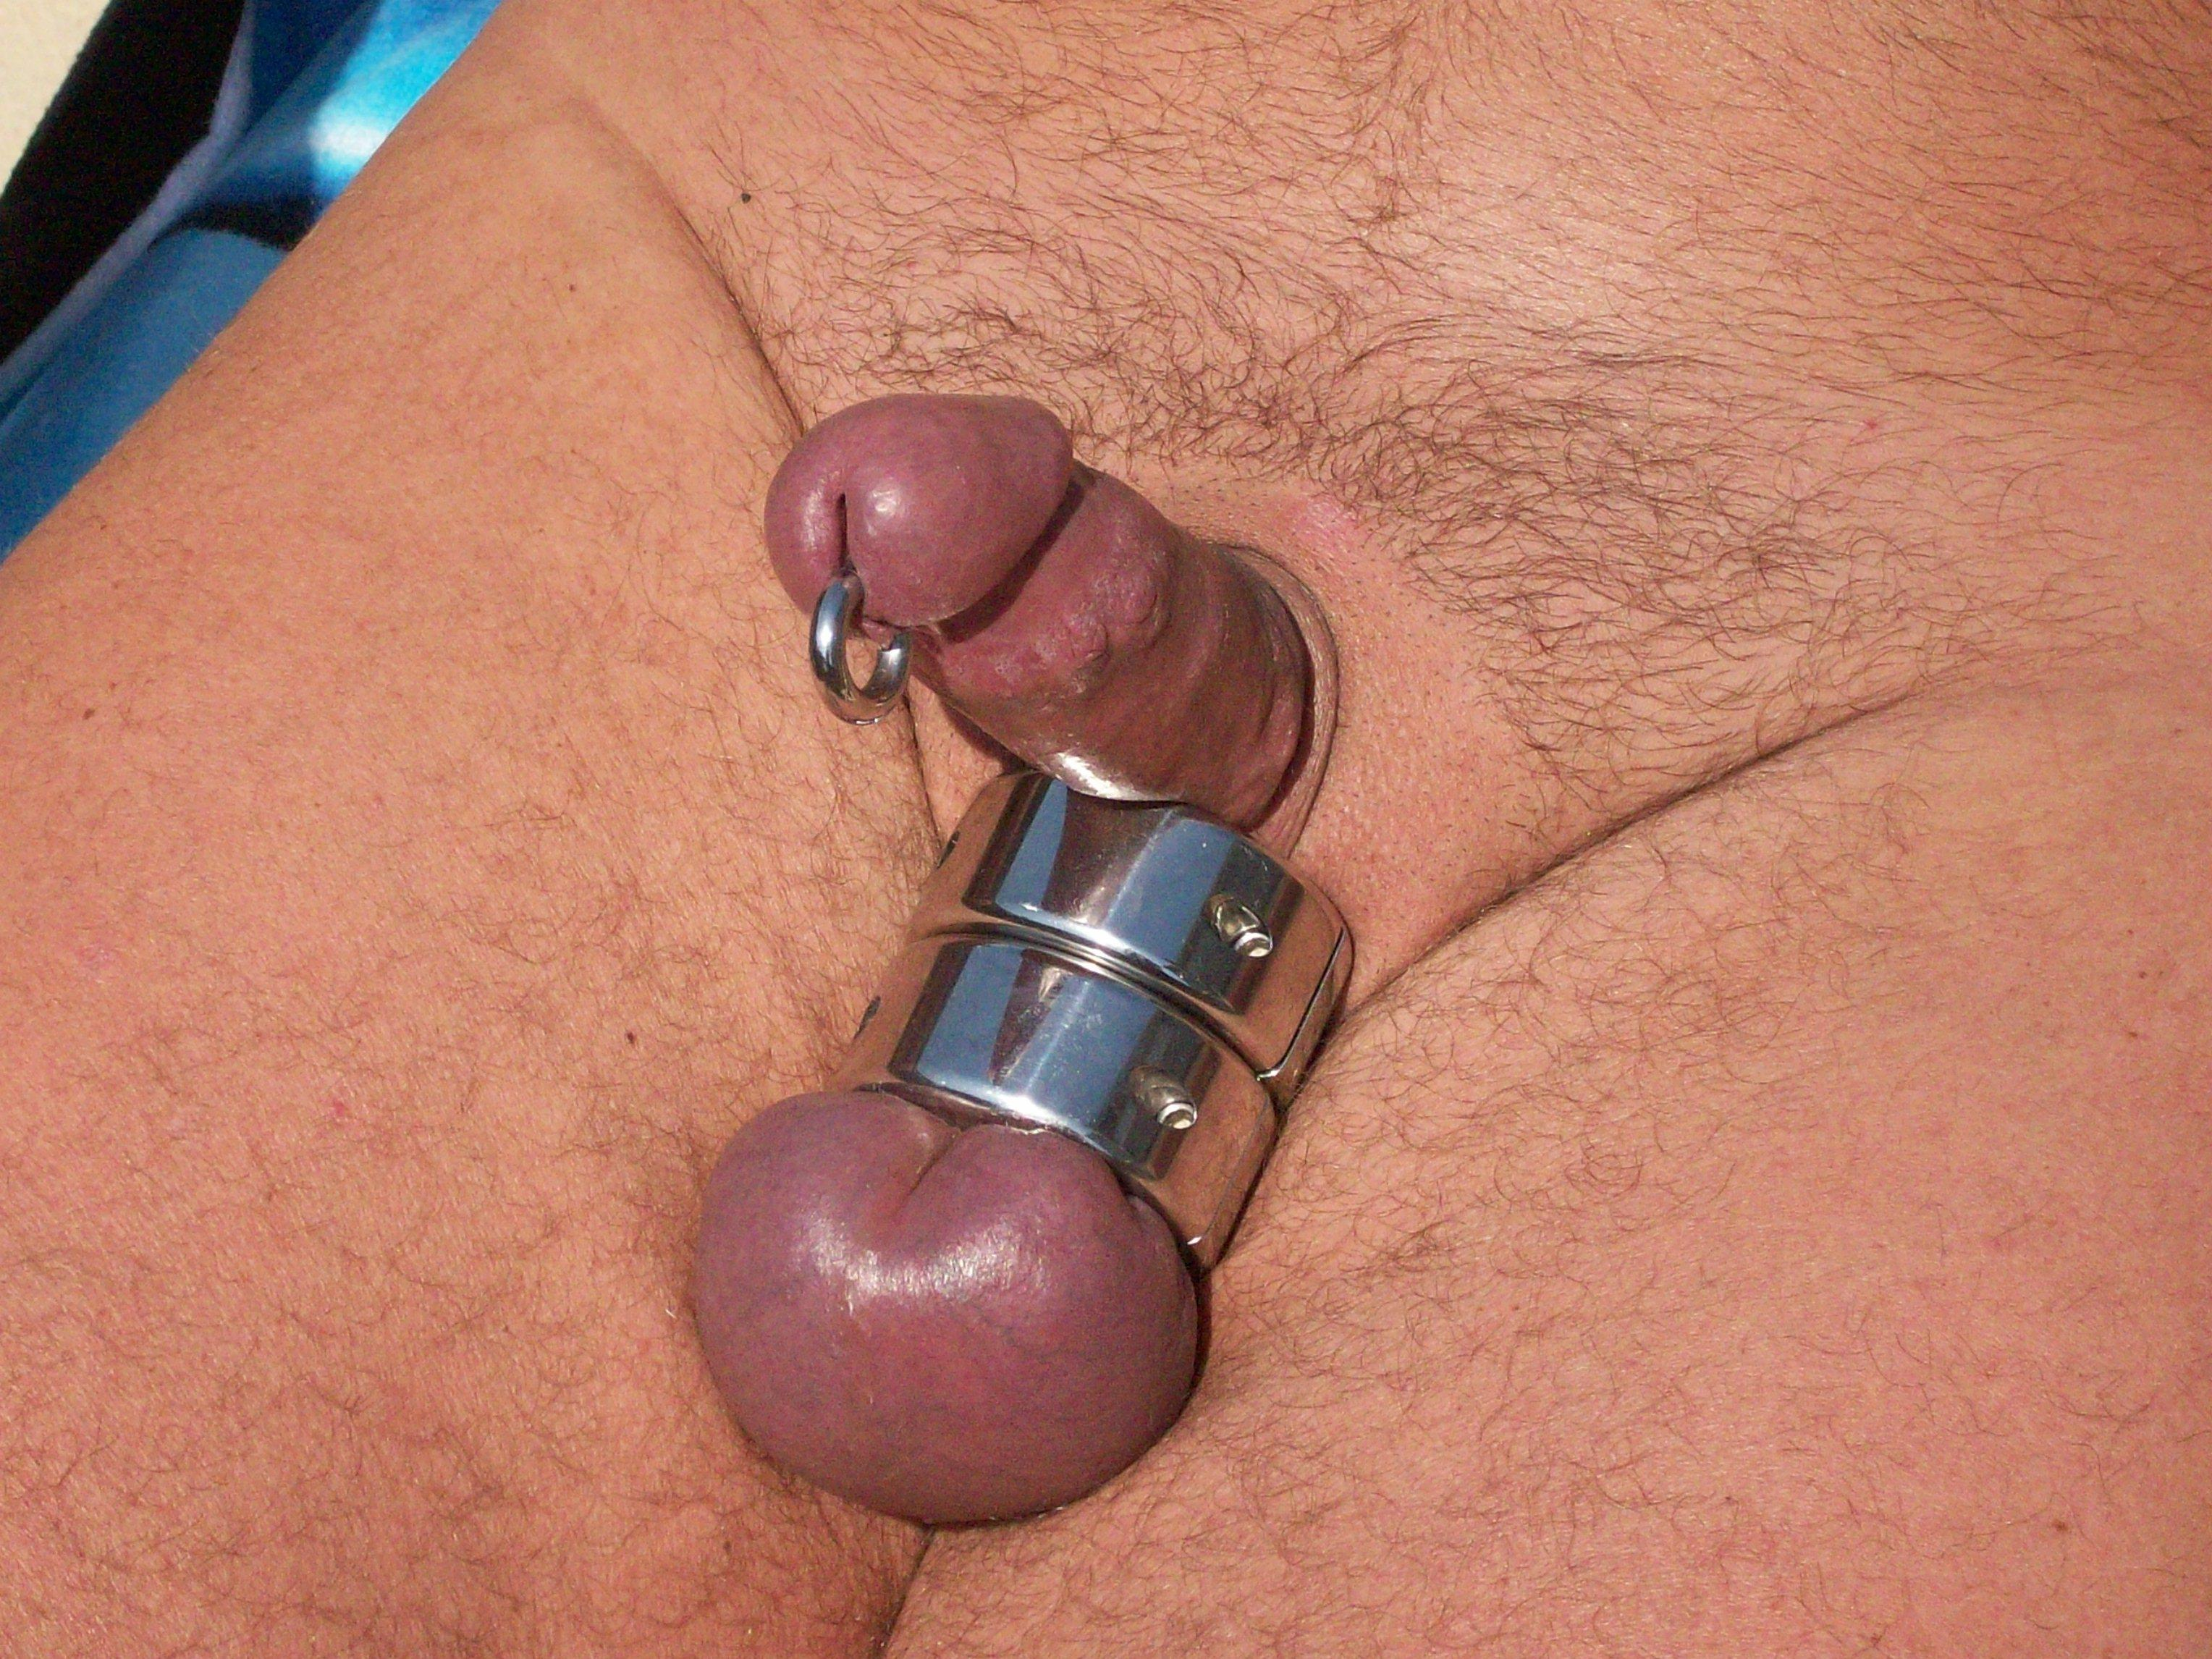 Gay stretched balls